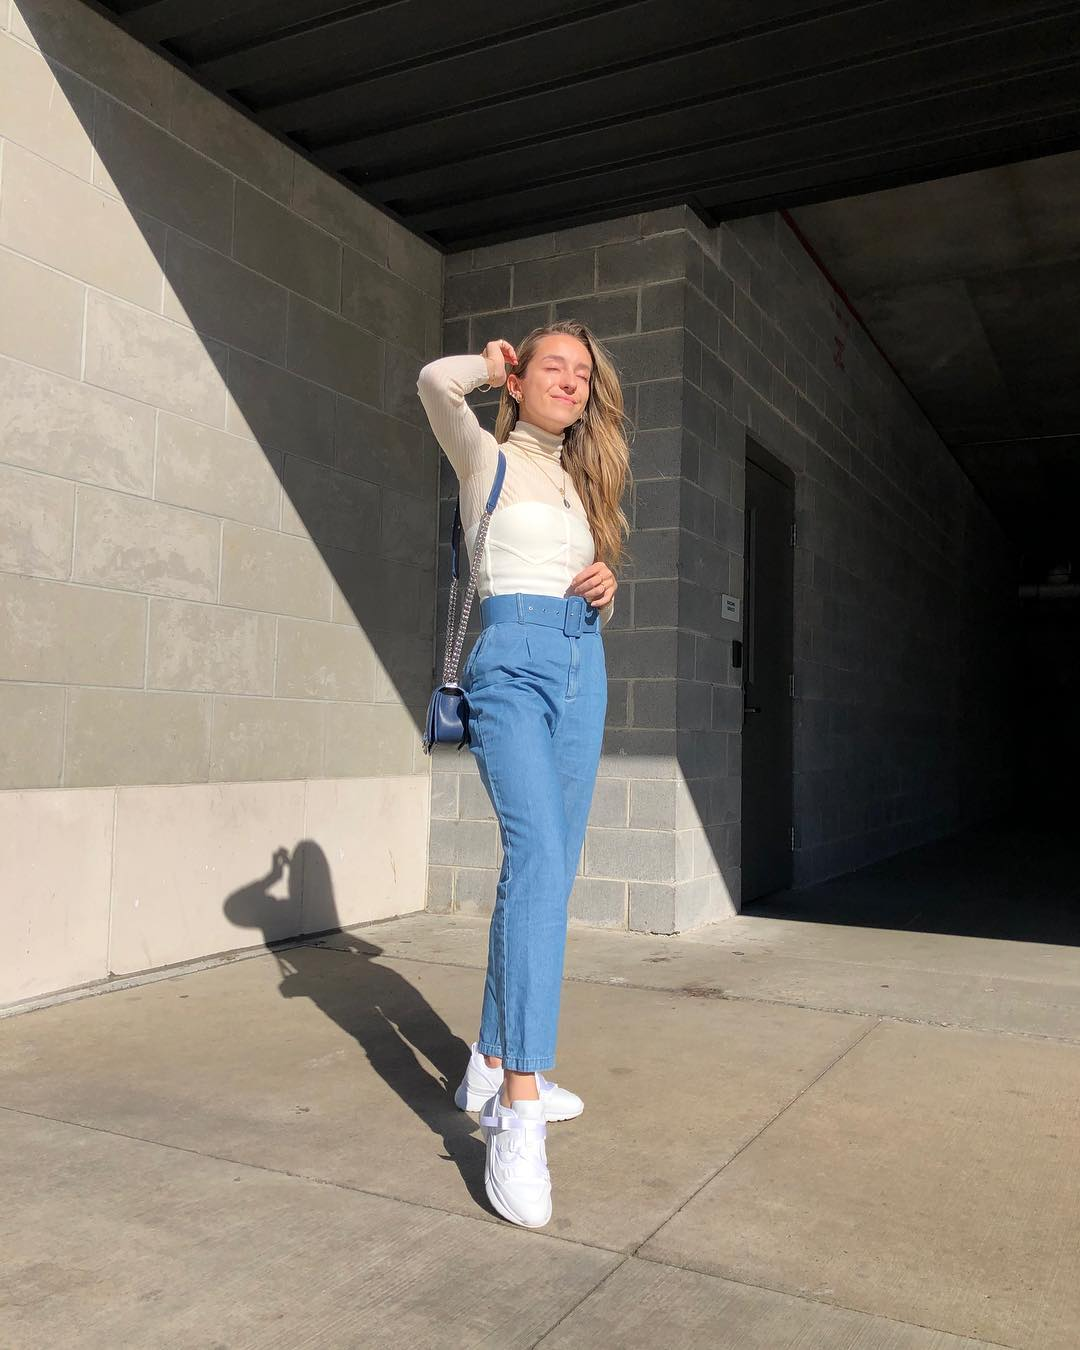 Turtleneck and high-rise jeans with white kicks: Spring Normcore Basics 2021